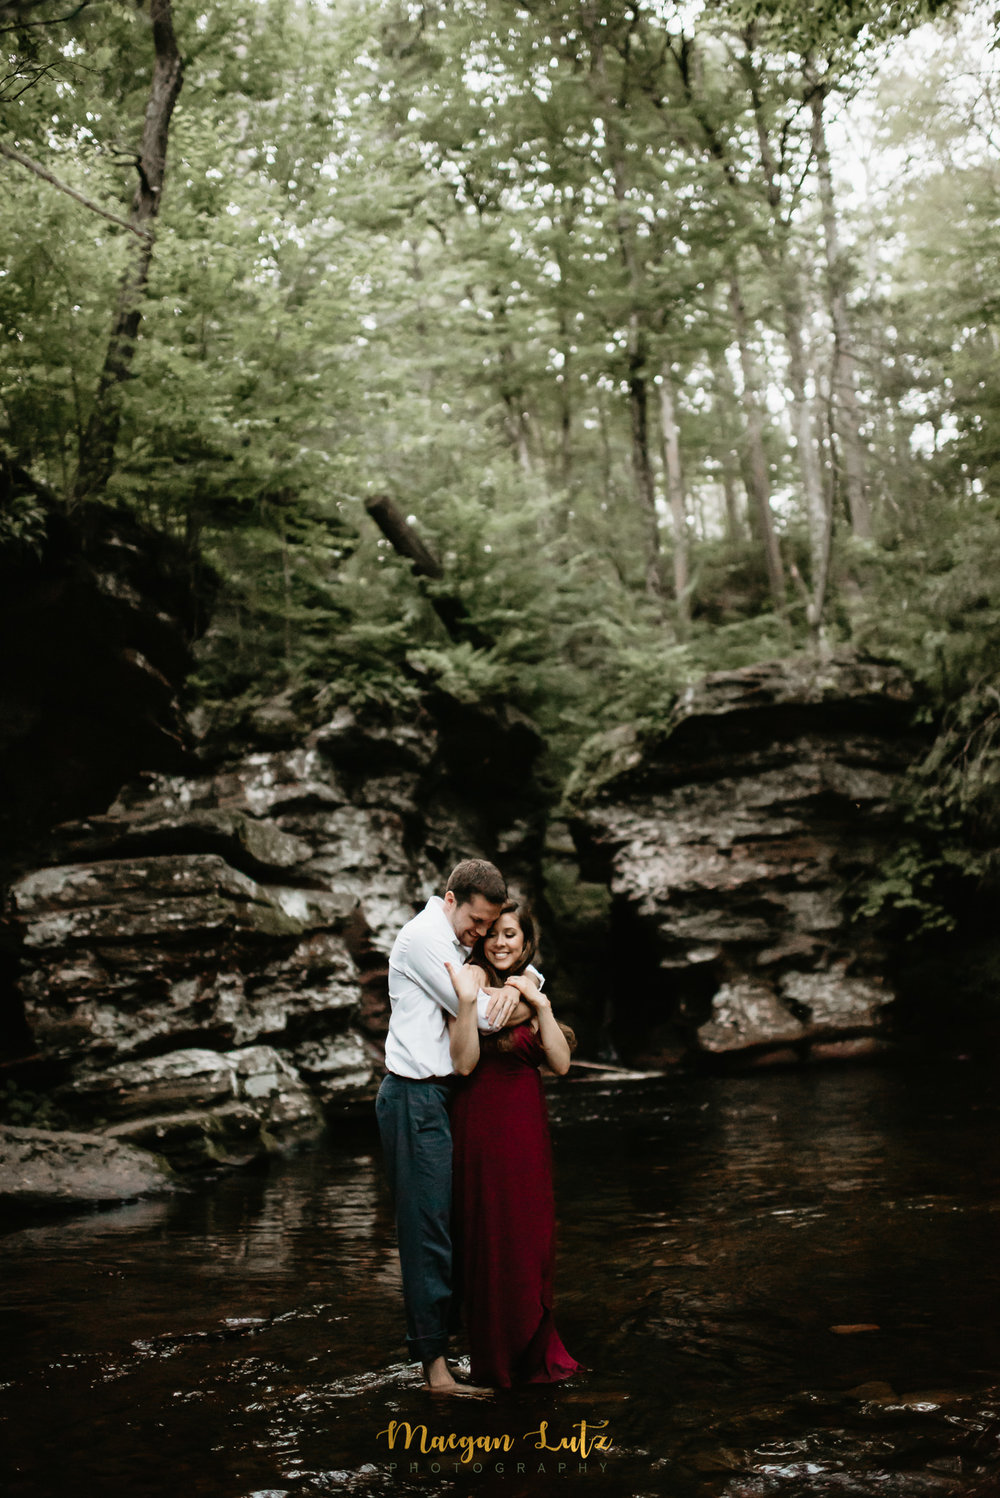 NEPA-Engagement-Wedding-Photographer-Session-at-Ricketts-Glen-State-Park-47.jpg